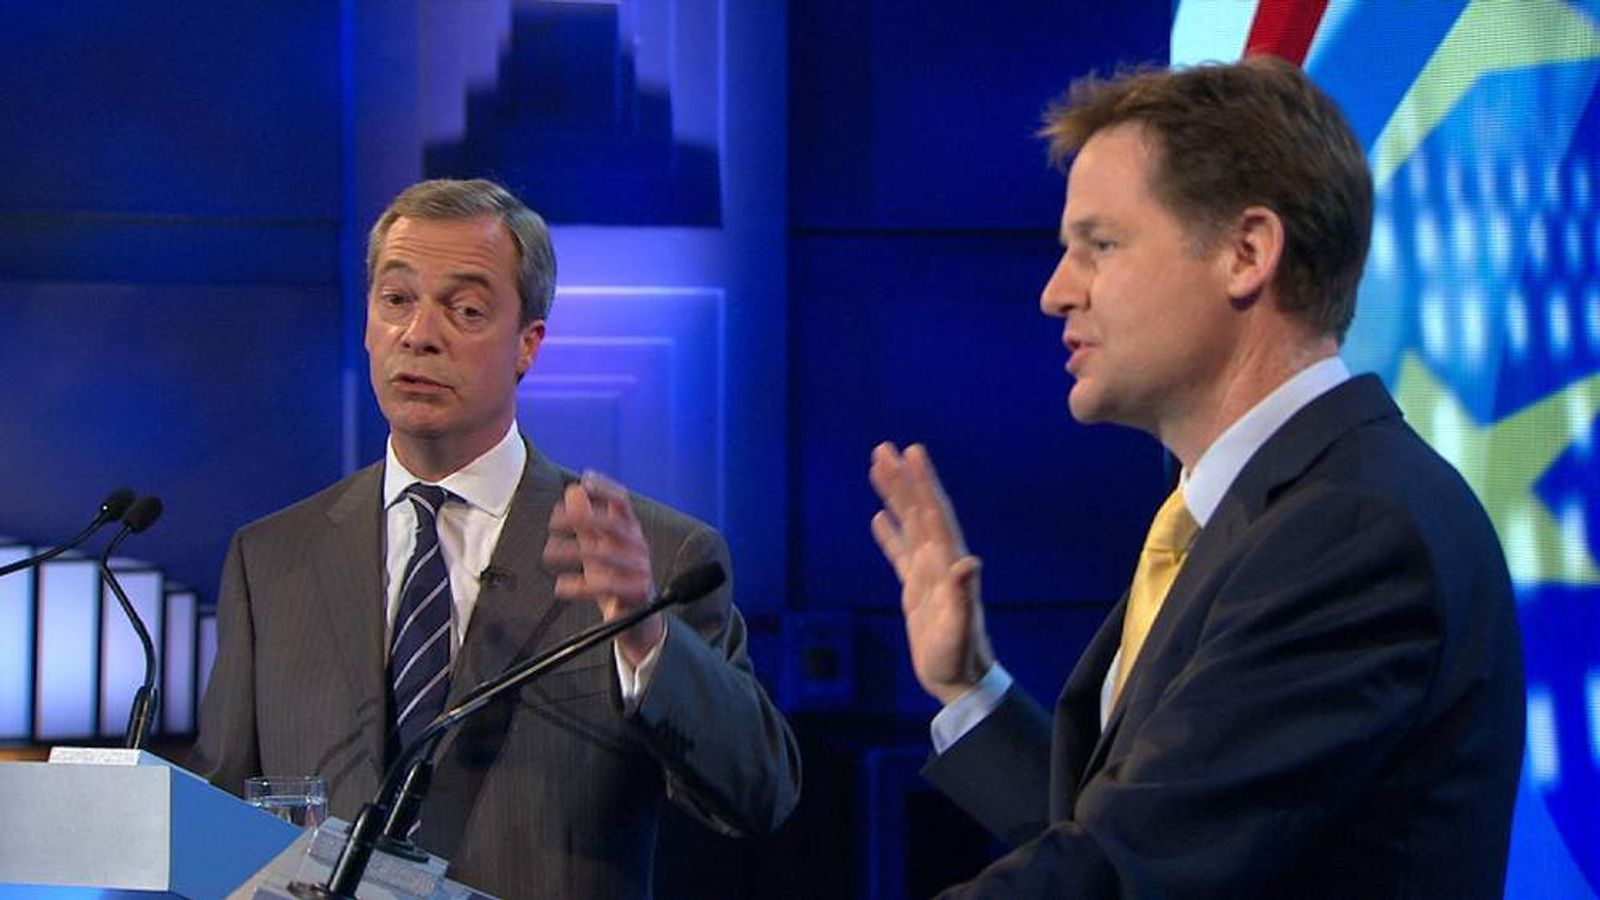 Nick Clegg and Nigel Farage EU debate